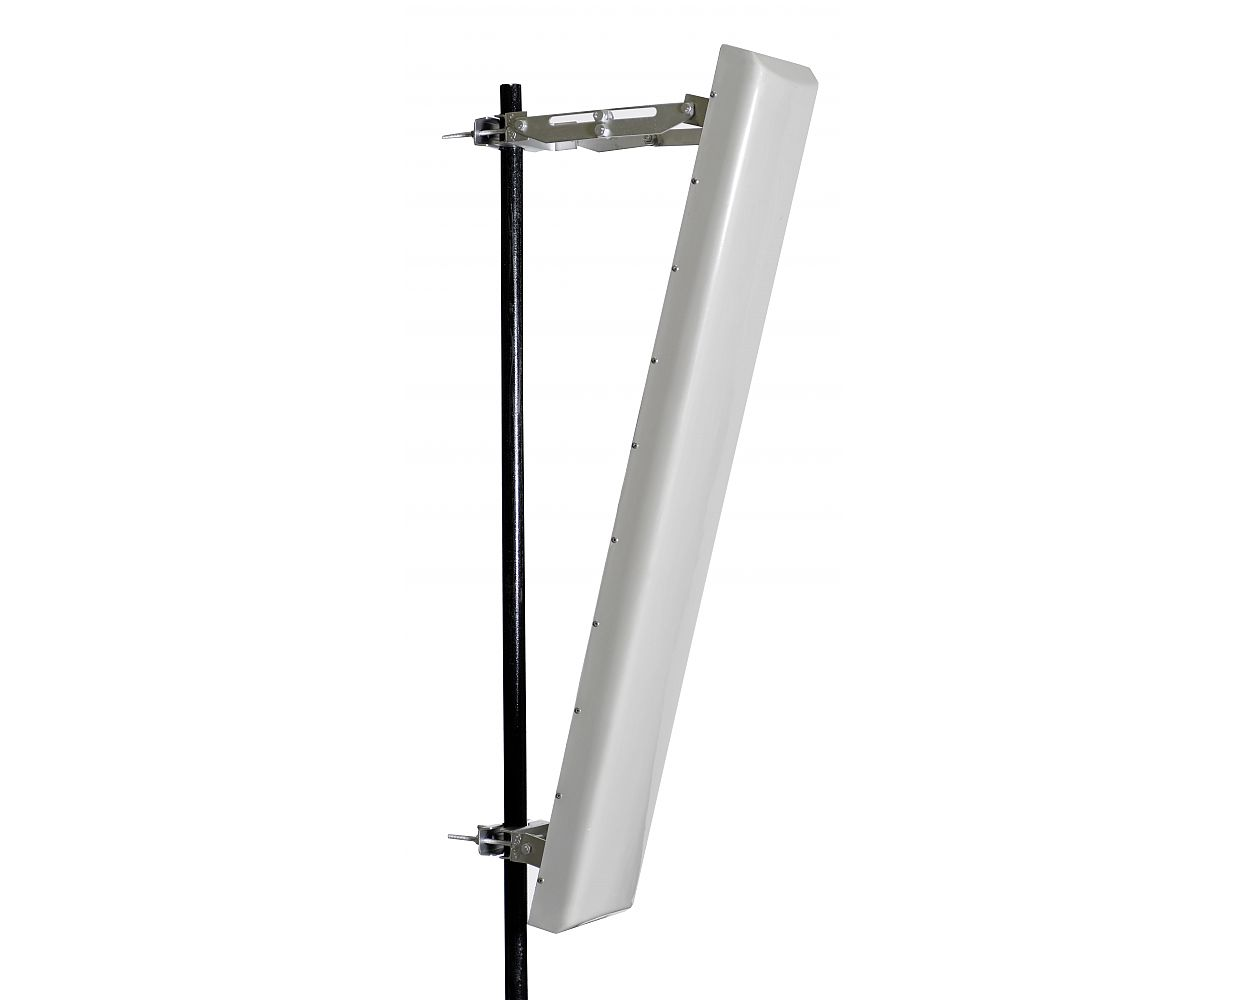 Sector WiFi 2 4 GHz Antenna | 17 dBi - 90 Degree Coverage